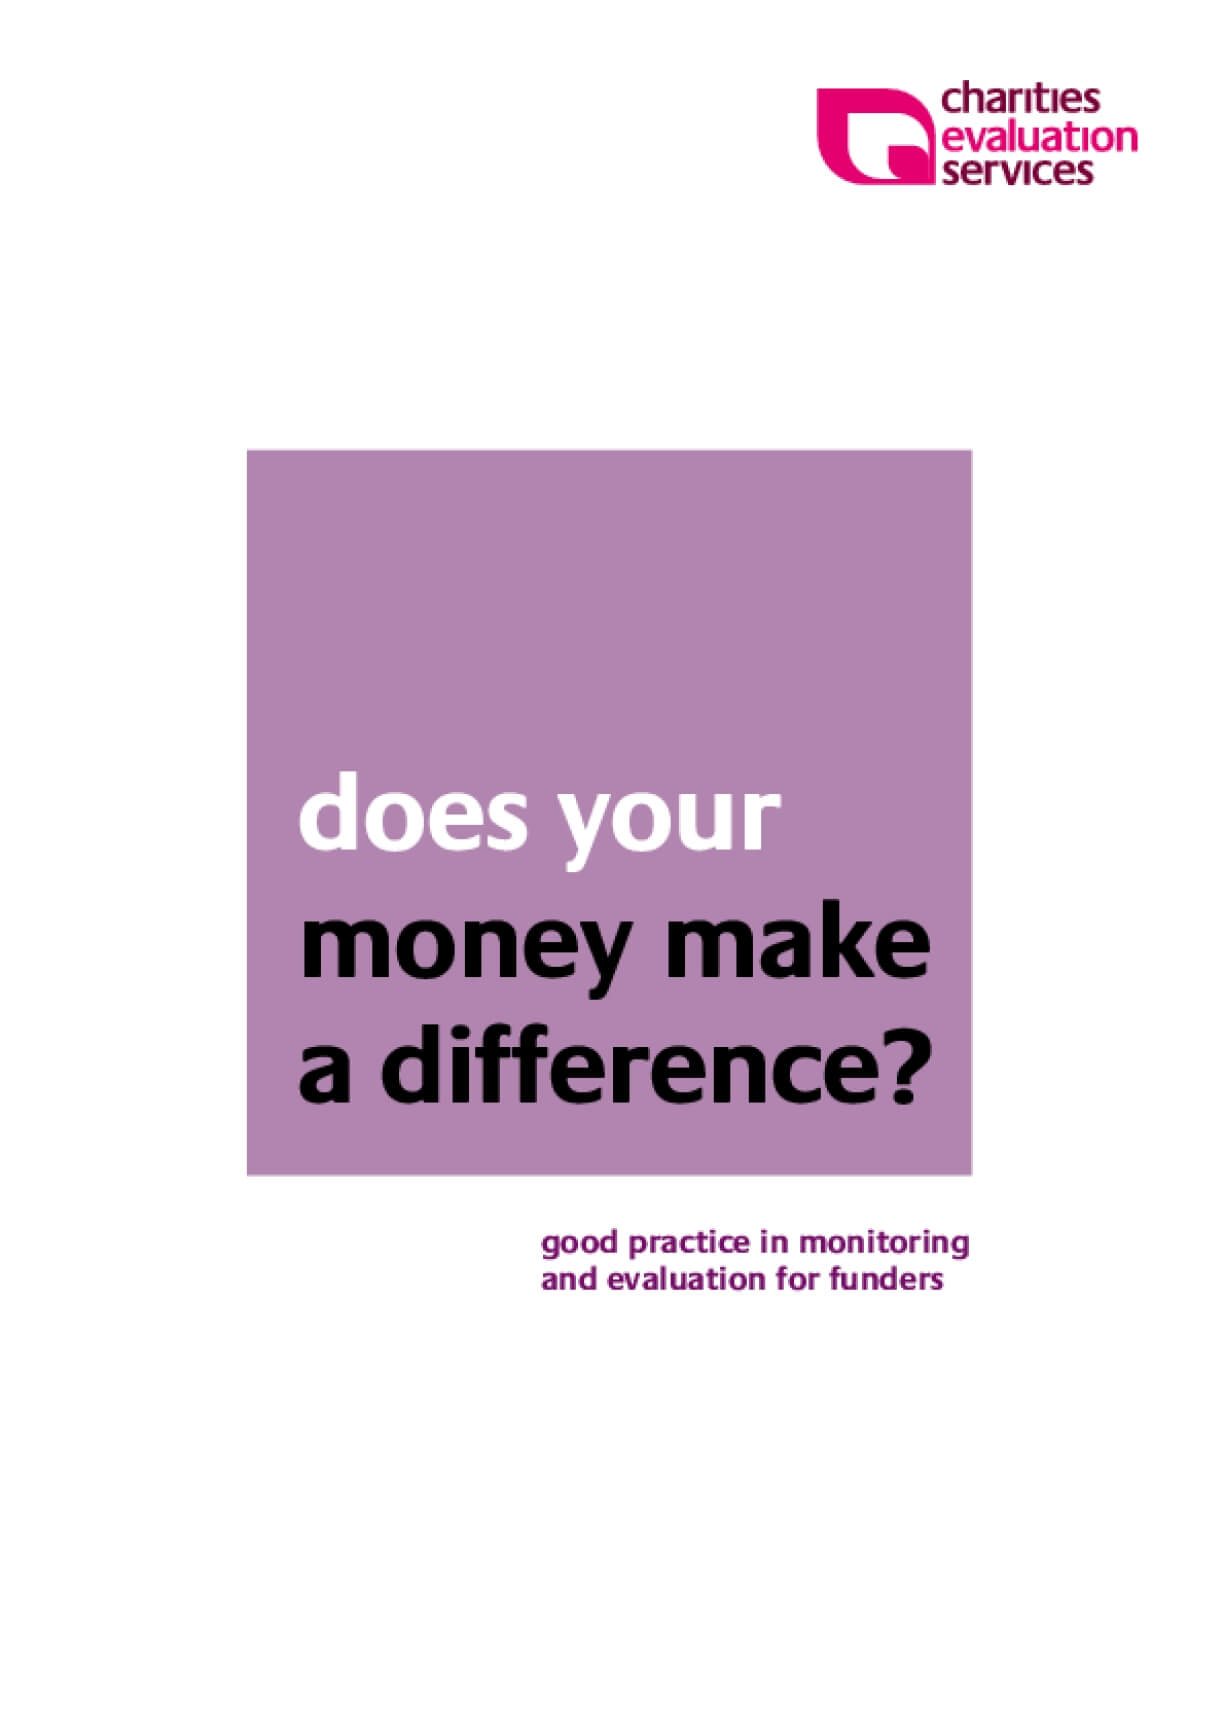 Does Your Money Make a Difference? Good Practice in Monitoring and Evaluation for Funders